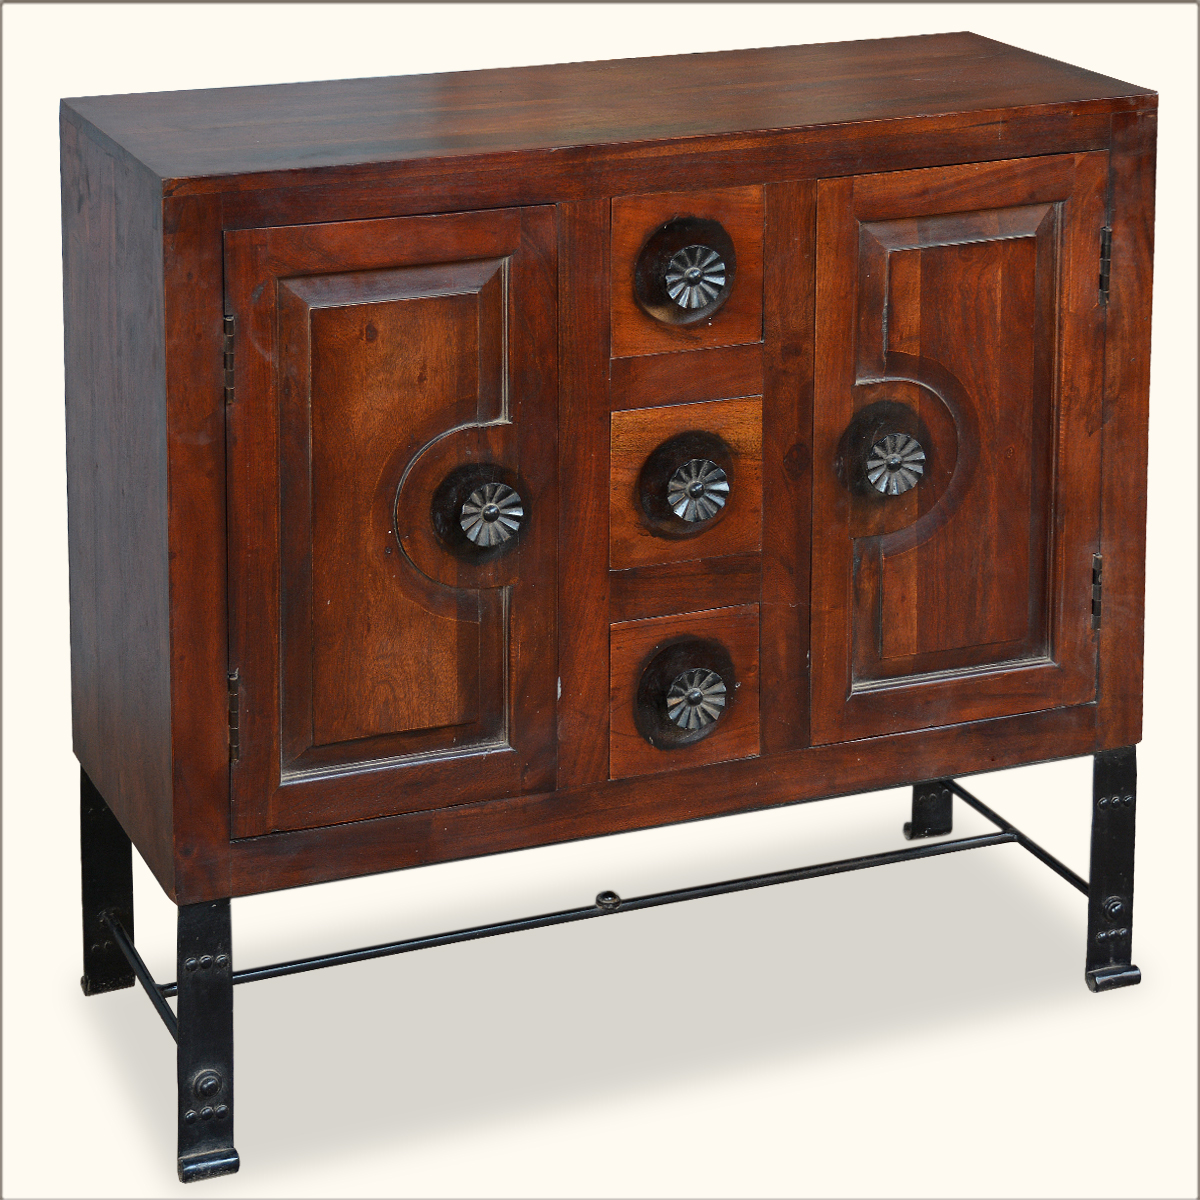 Rustic Sideboard Cabinet Wood Iron Storage Pillbox Drawers. Victorian Kitchens. Luxe Furniture Pensacola. Huntington House Furniture Reviews. Microwave Under Cabinet. Out Door Lights. Baltic Brown Granite. Brown Refrigerator. Lowes Drawer Pulls